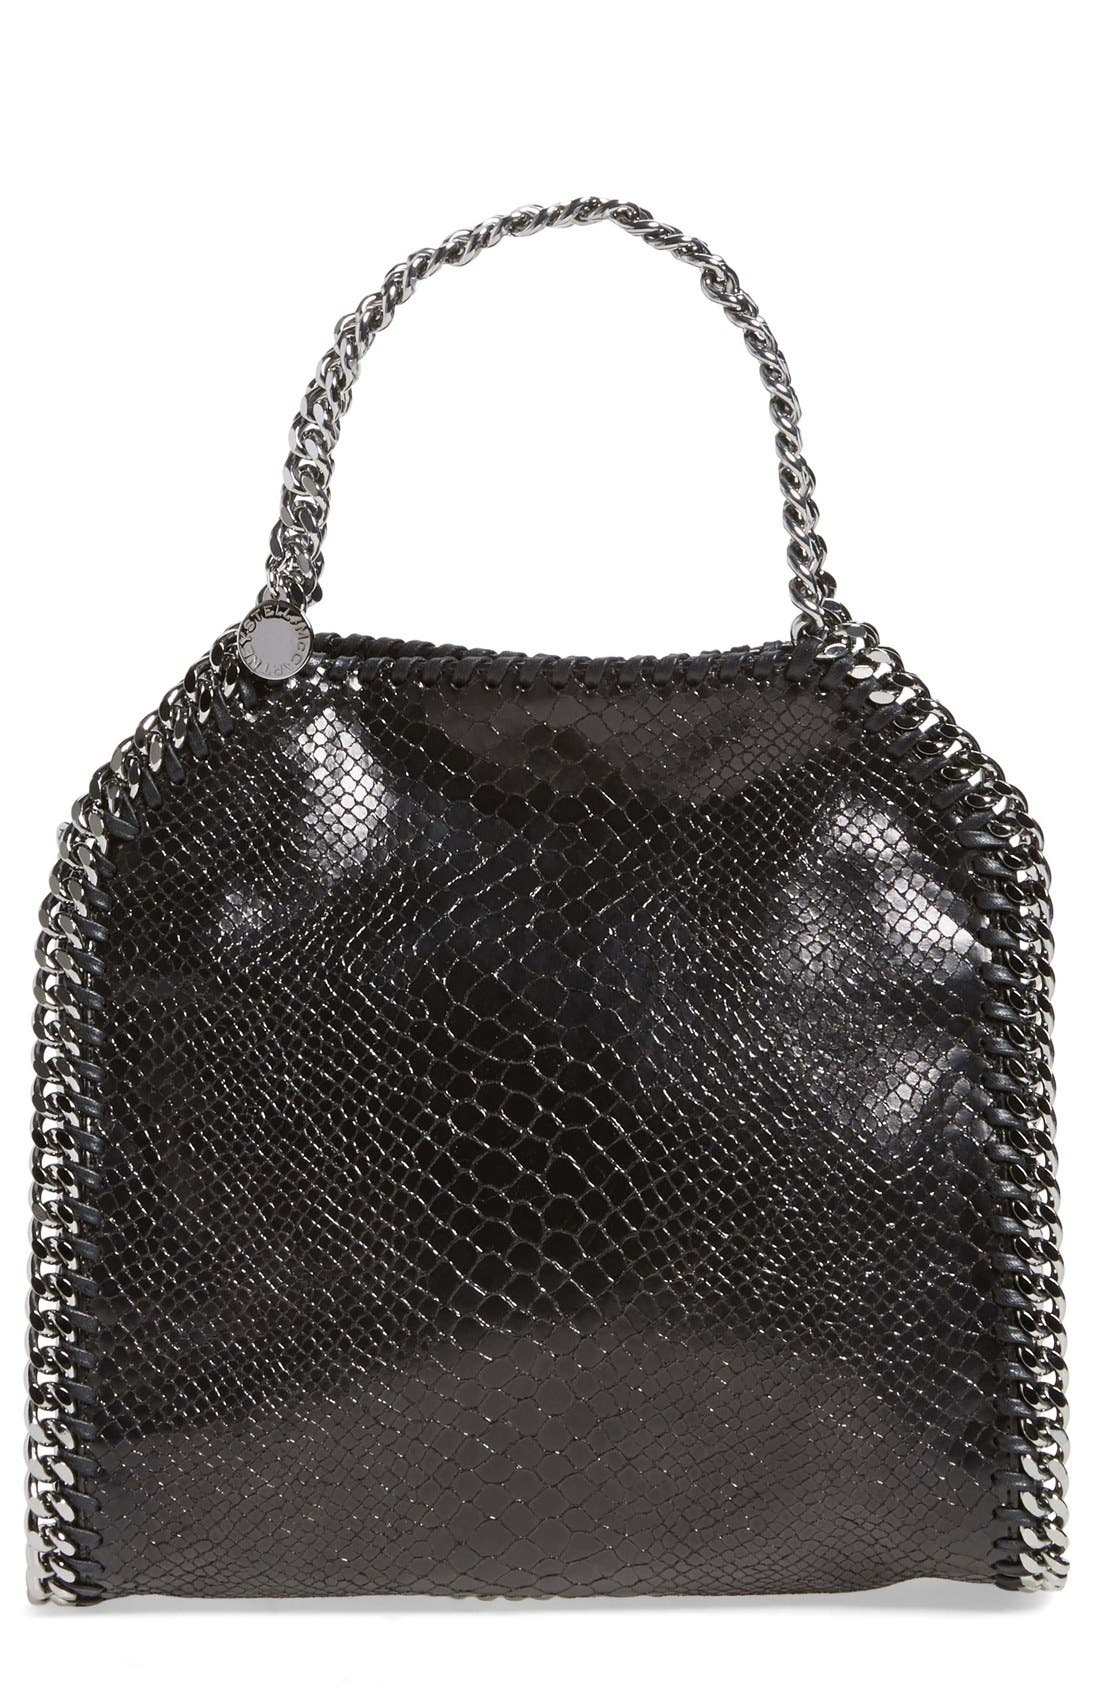 Alternate Image 1 Selected - Stella McCartney 'Mini Falabella' Snake Embossed Faux Leather Tote